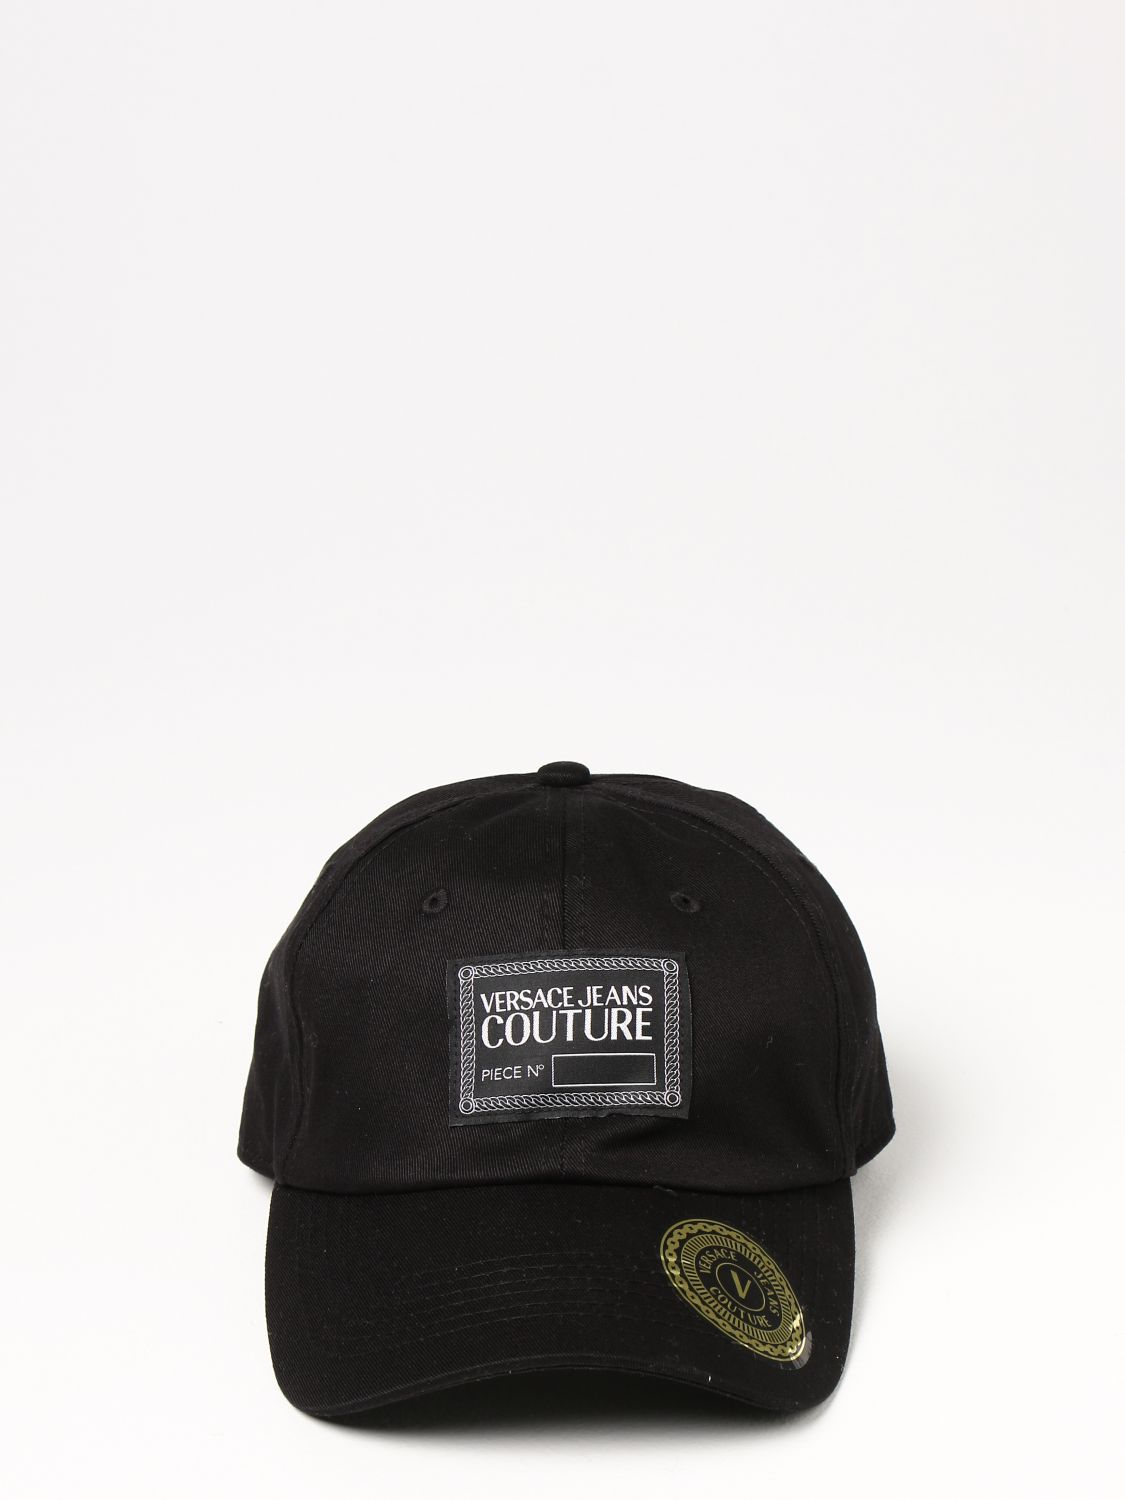 Gorro Versace Jeans Couture: Gorro hombre Versace Jeans Couture negro 2